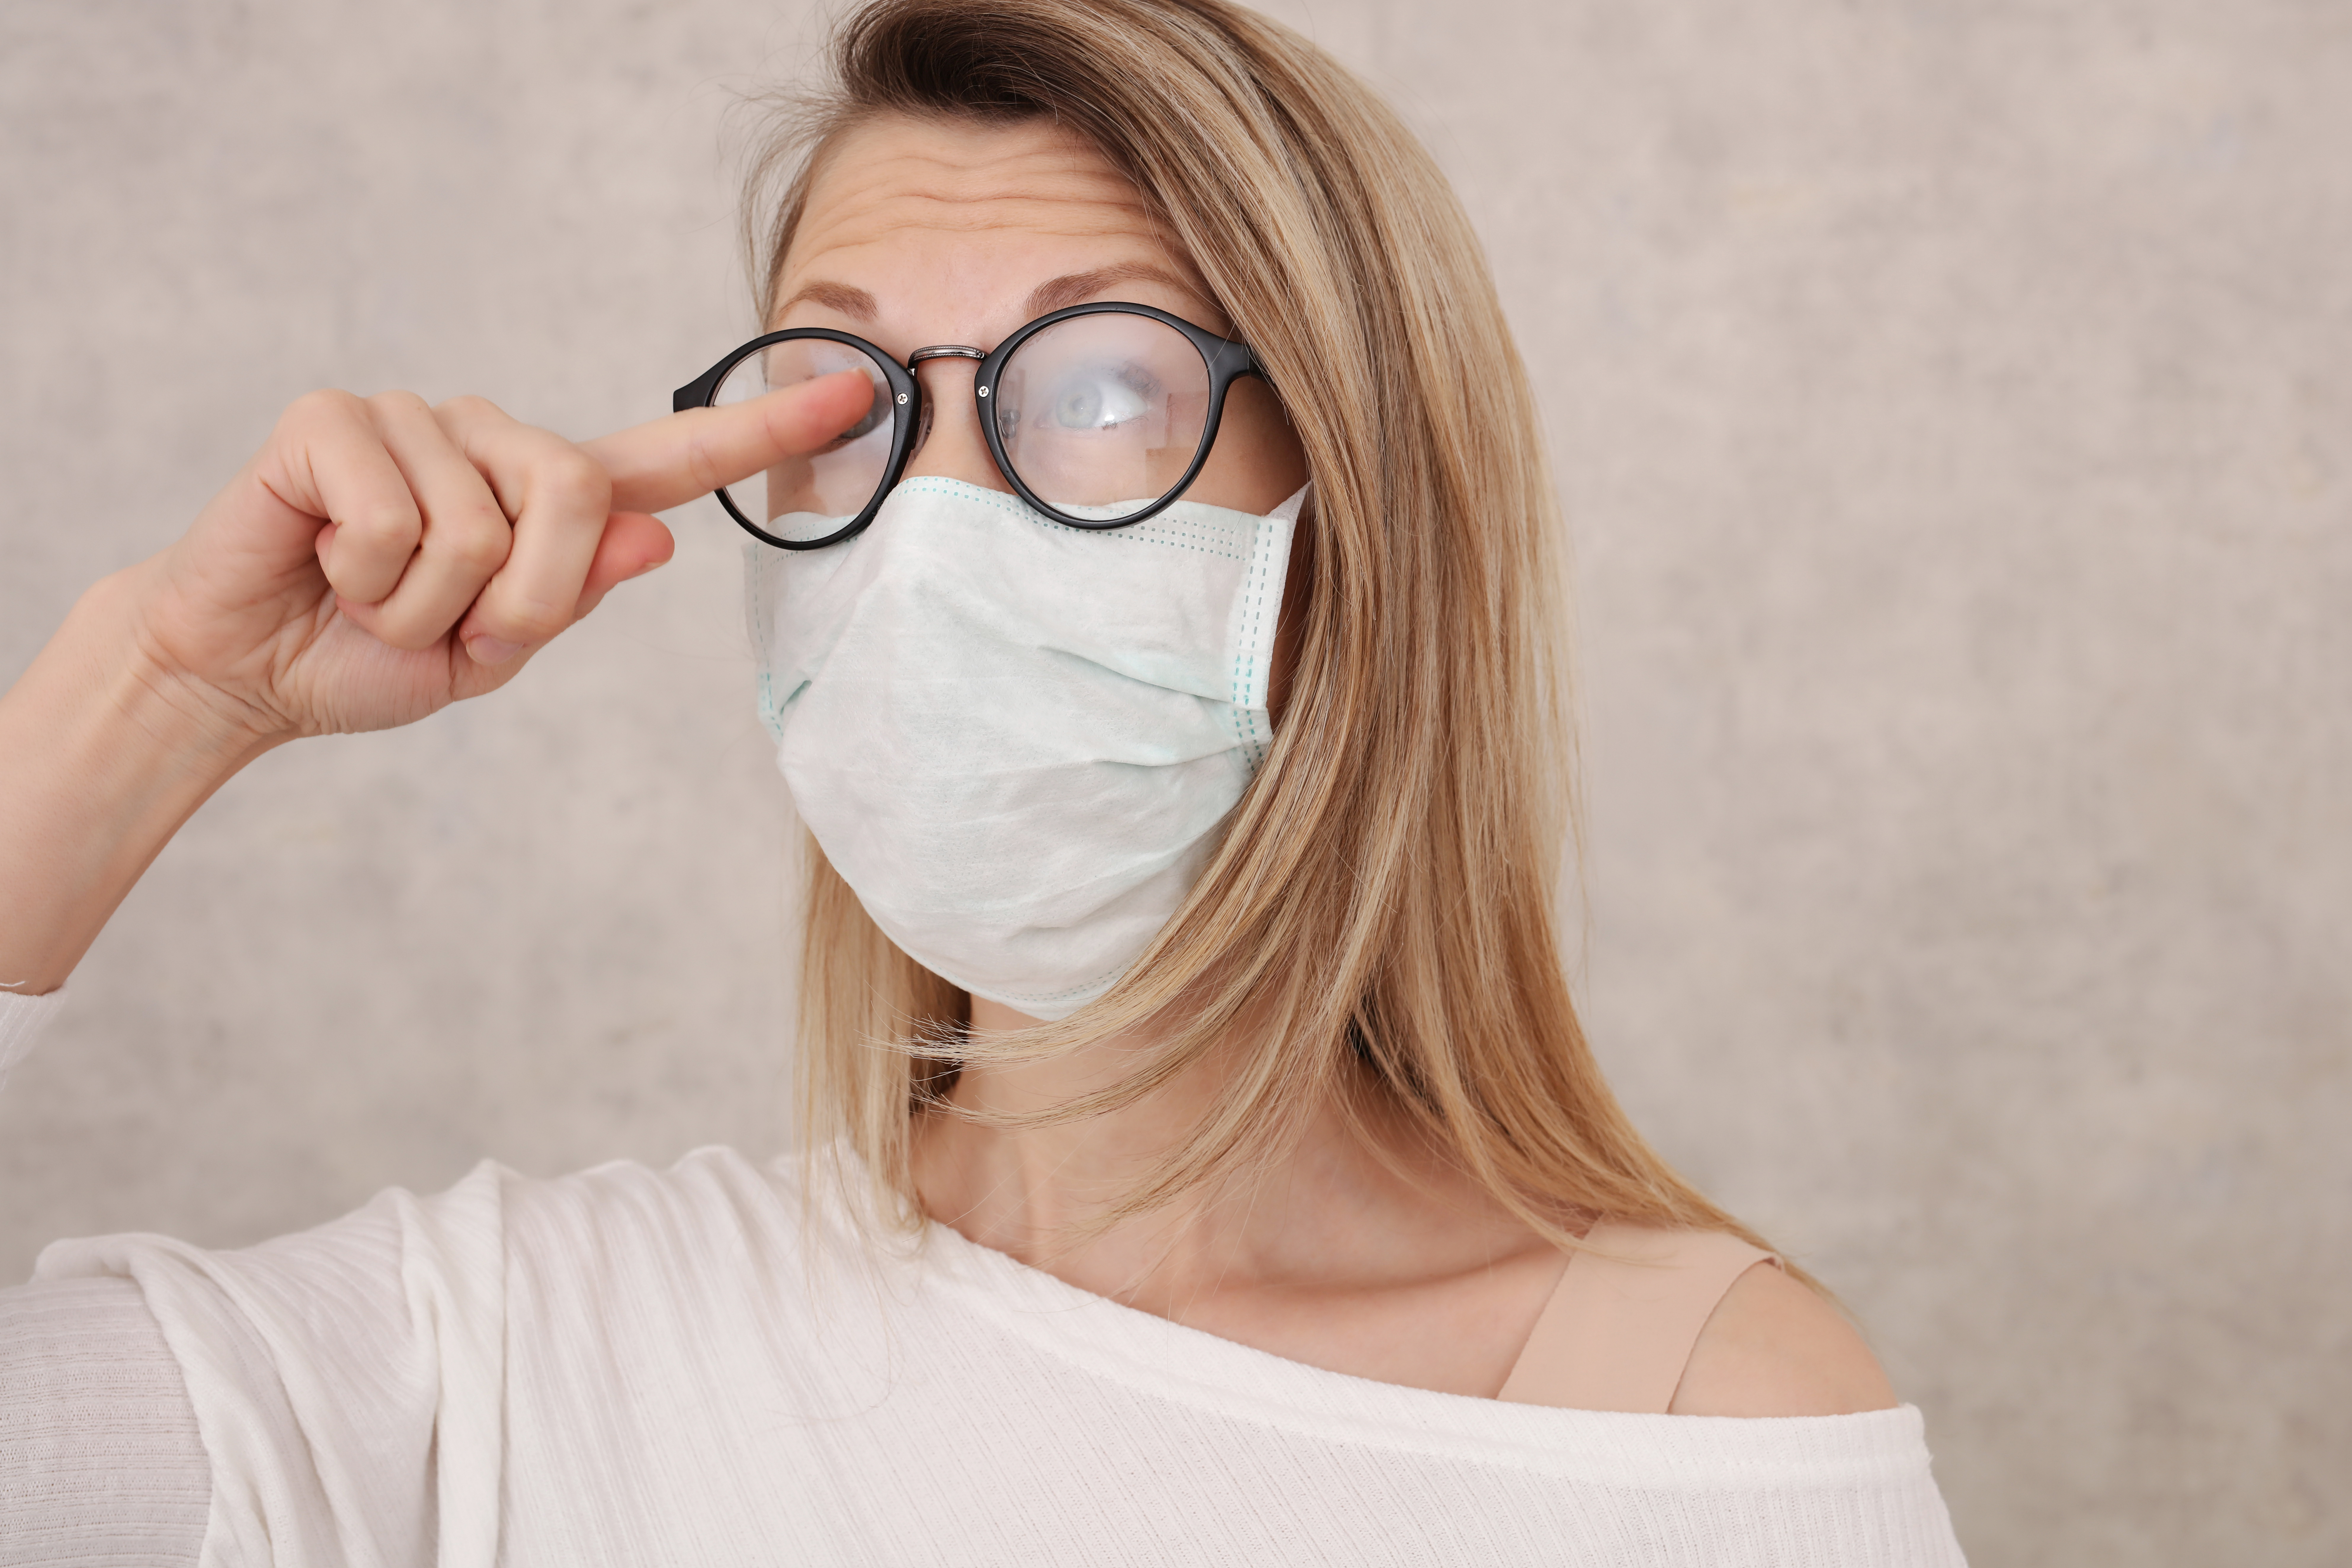 woman wearing glasses and a face mask trying to un-fog them